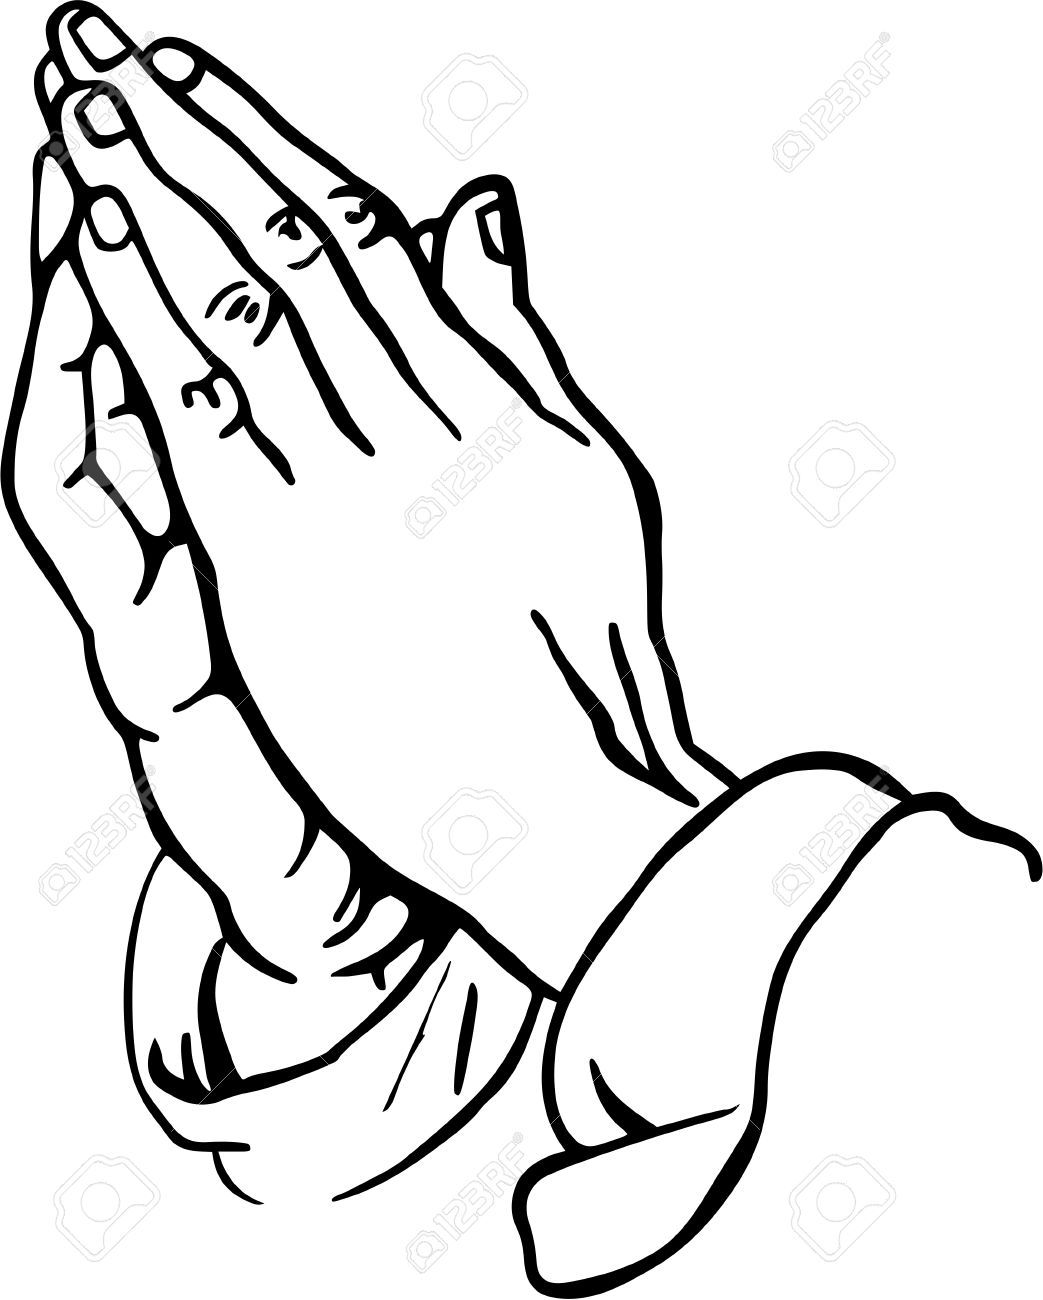 Clipart of praying hands picture library download Stock Photo | Craft Ideas | Praying hands tattoo, Praying hands ... picture library download